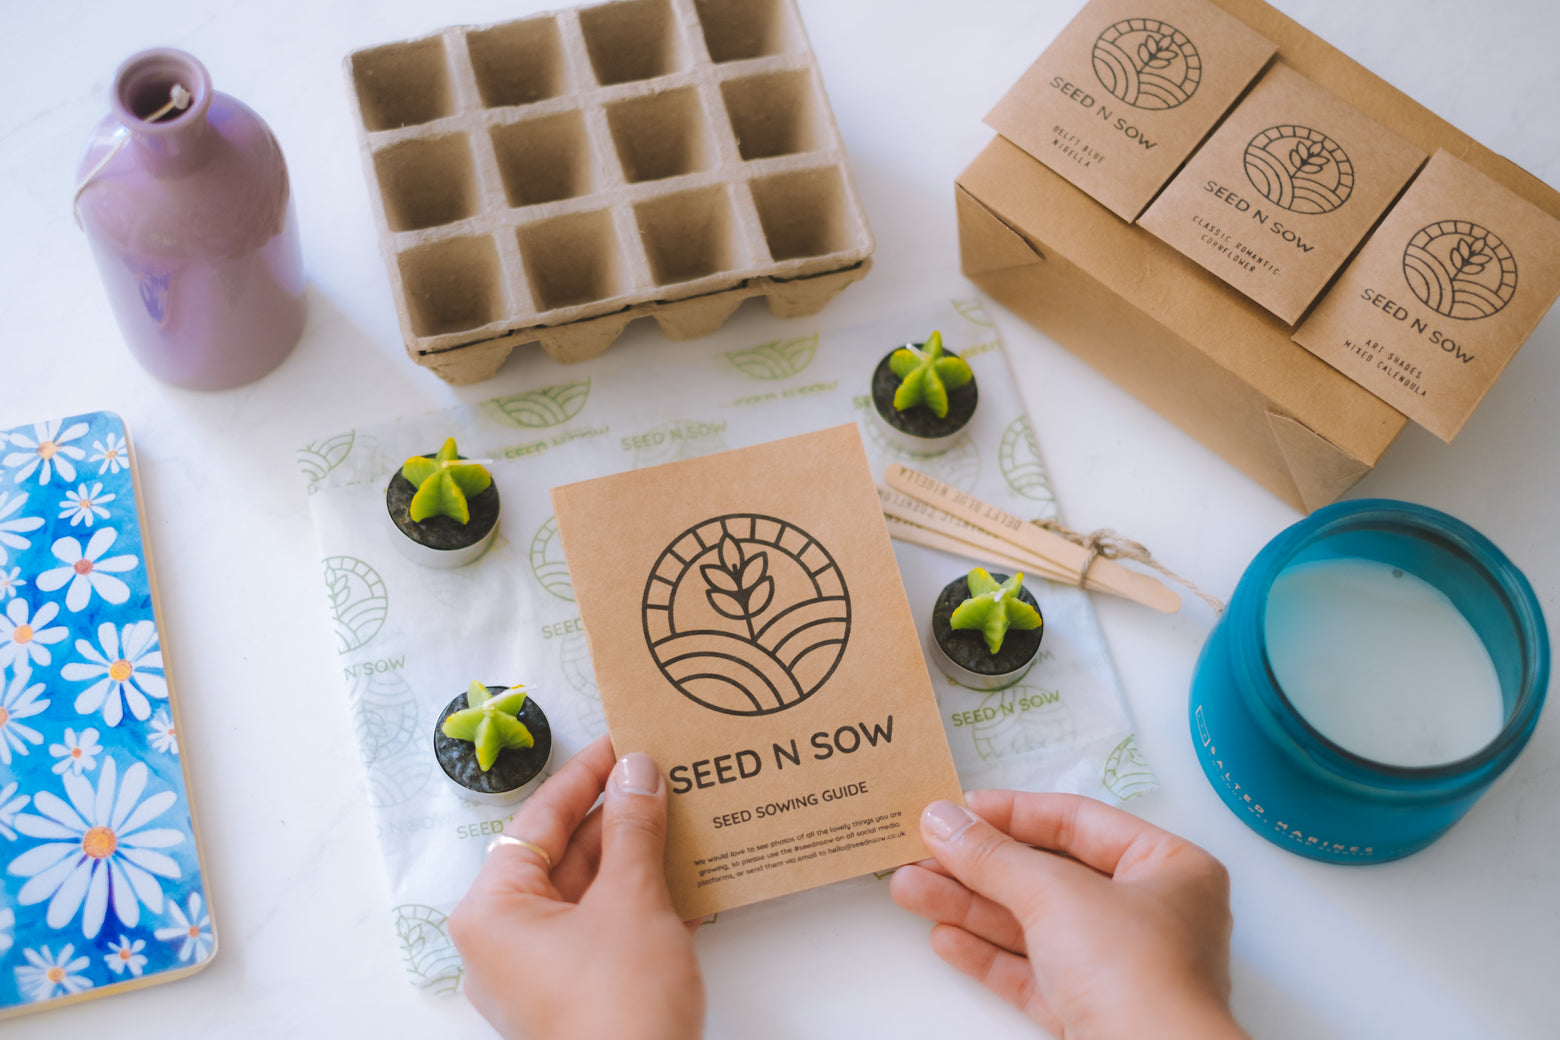 all-in-one-seednsow-seed-kit